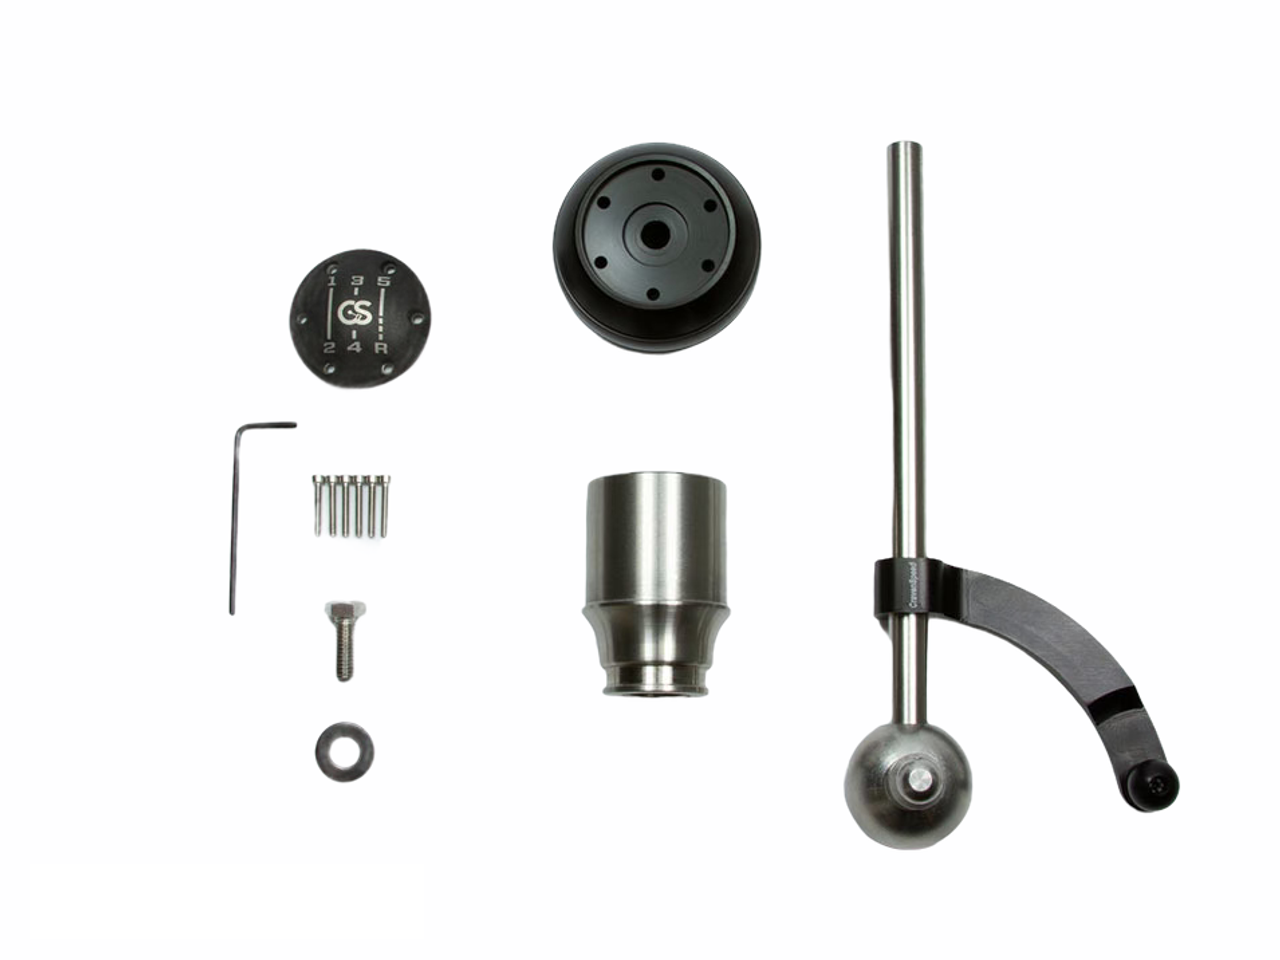 FIAT Abarth/Turbo 500 Short Shifter Kit Fits 2012-on FIAT 500 Abarth, 500T with manual transmission - Auto Ricambi